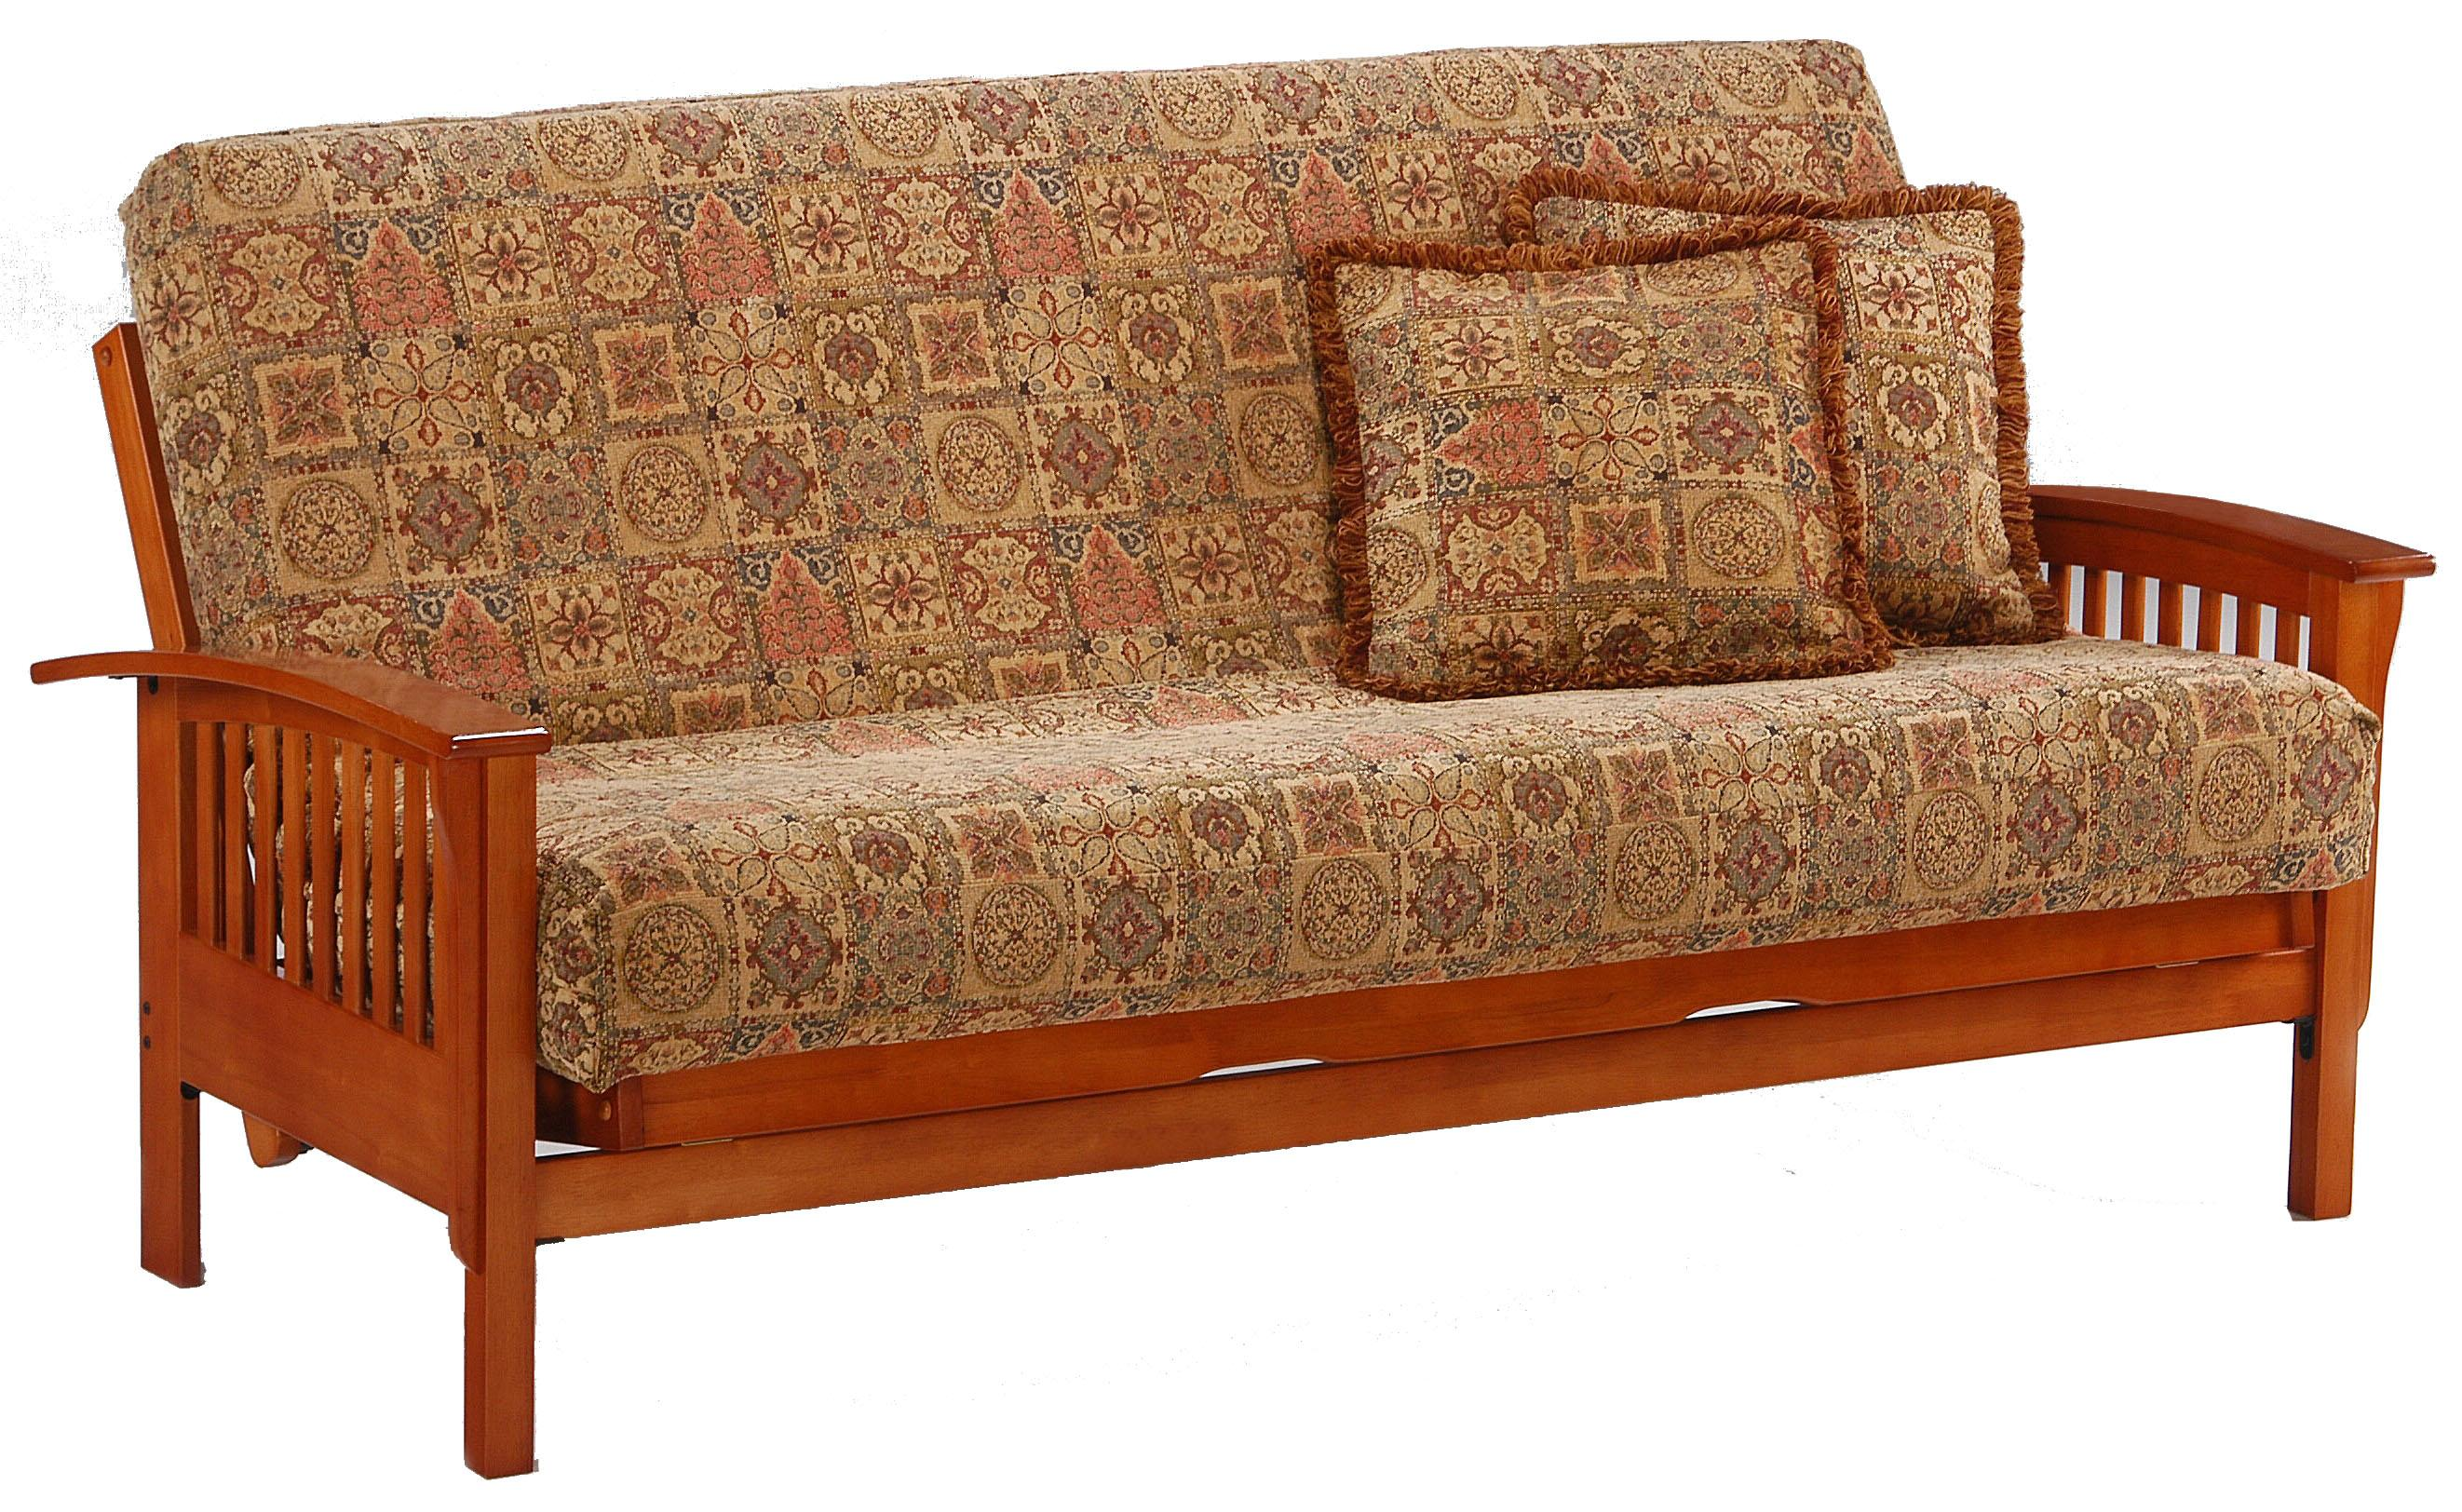 Winchester Teak Chair Size Futon by Night & Day Furniture at Godby Home Furnishings